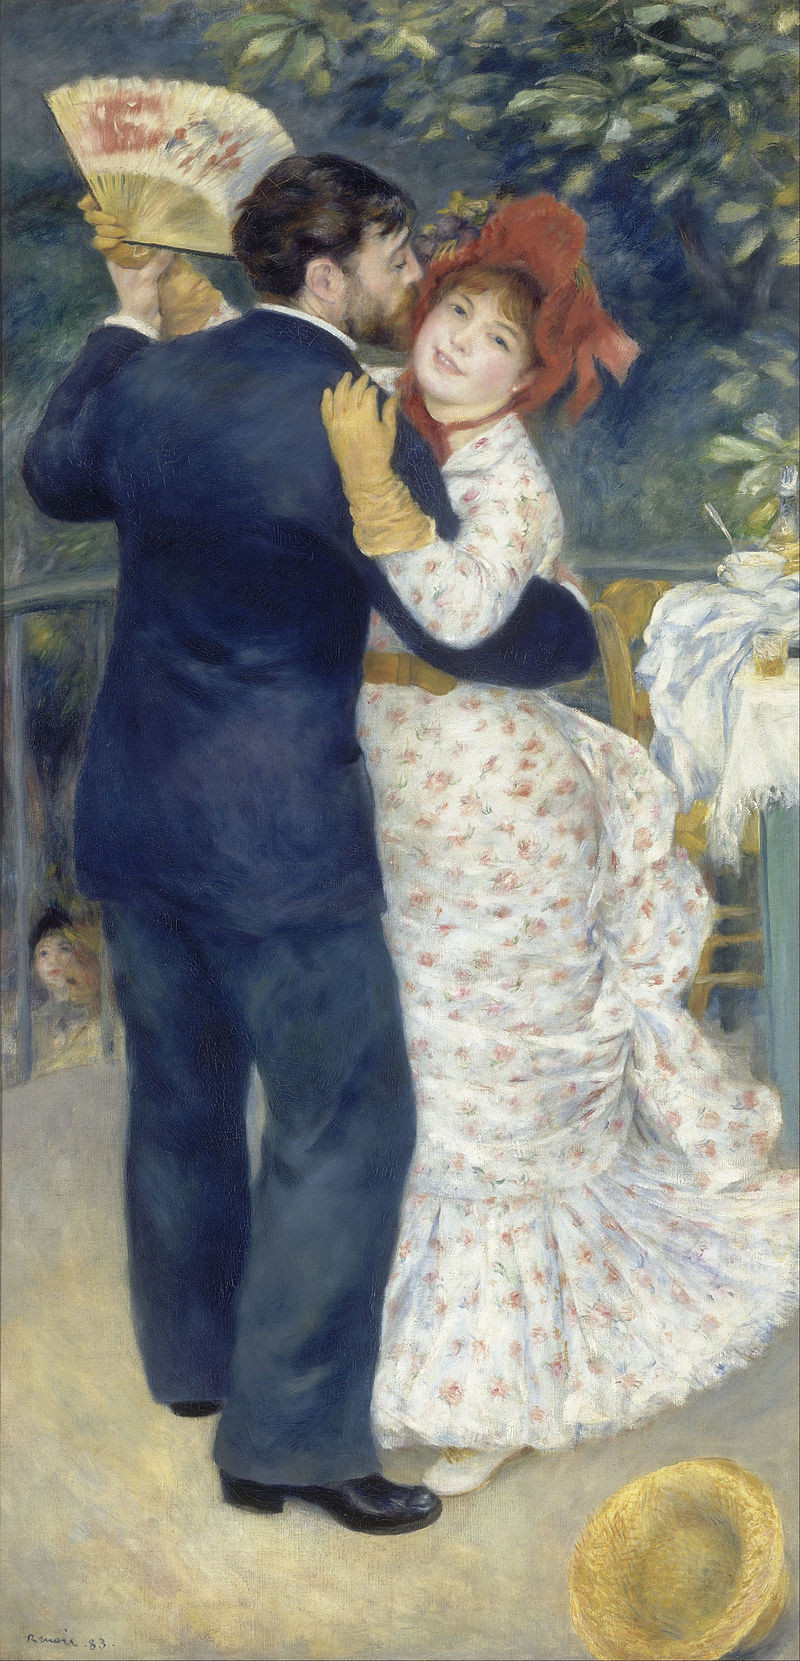 Pierre-Auguste Renoir's 1883 painting, Dance in the Country